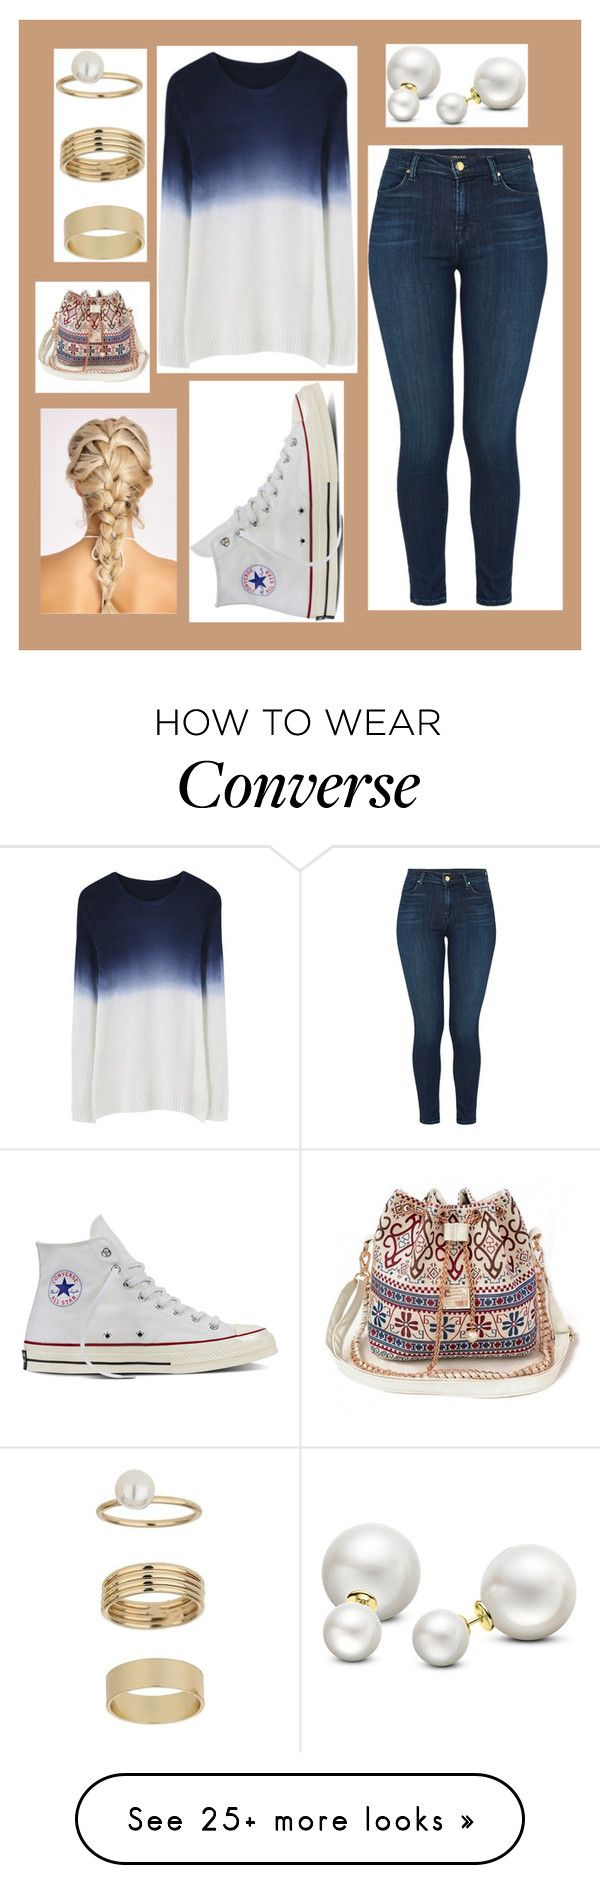 """10-19-16"" by clear-skye on Polyvore featuring Converse, J Brand, Allurez and Miss Selfridge"